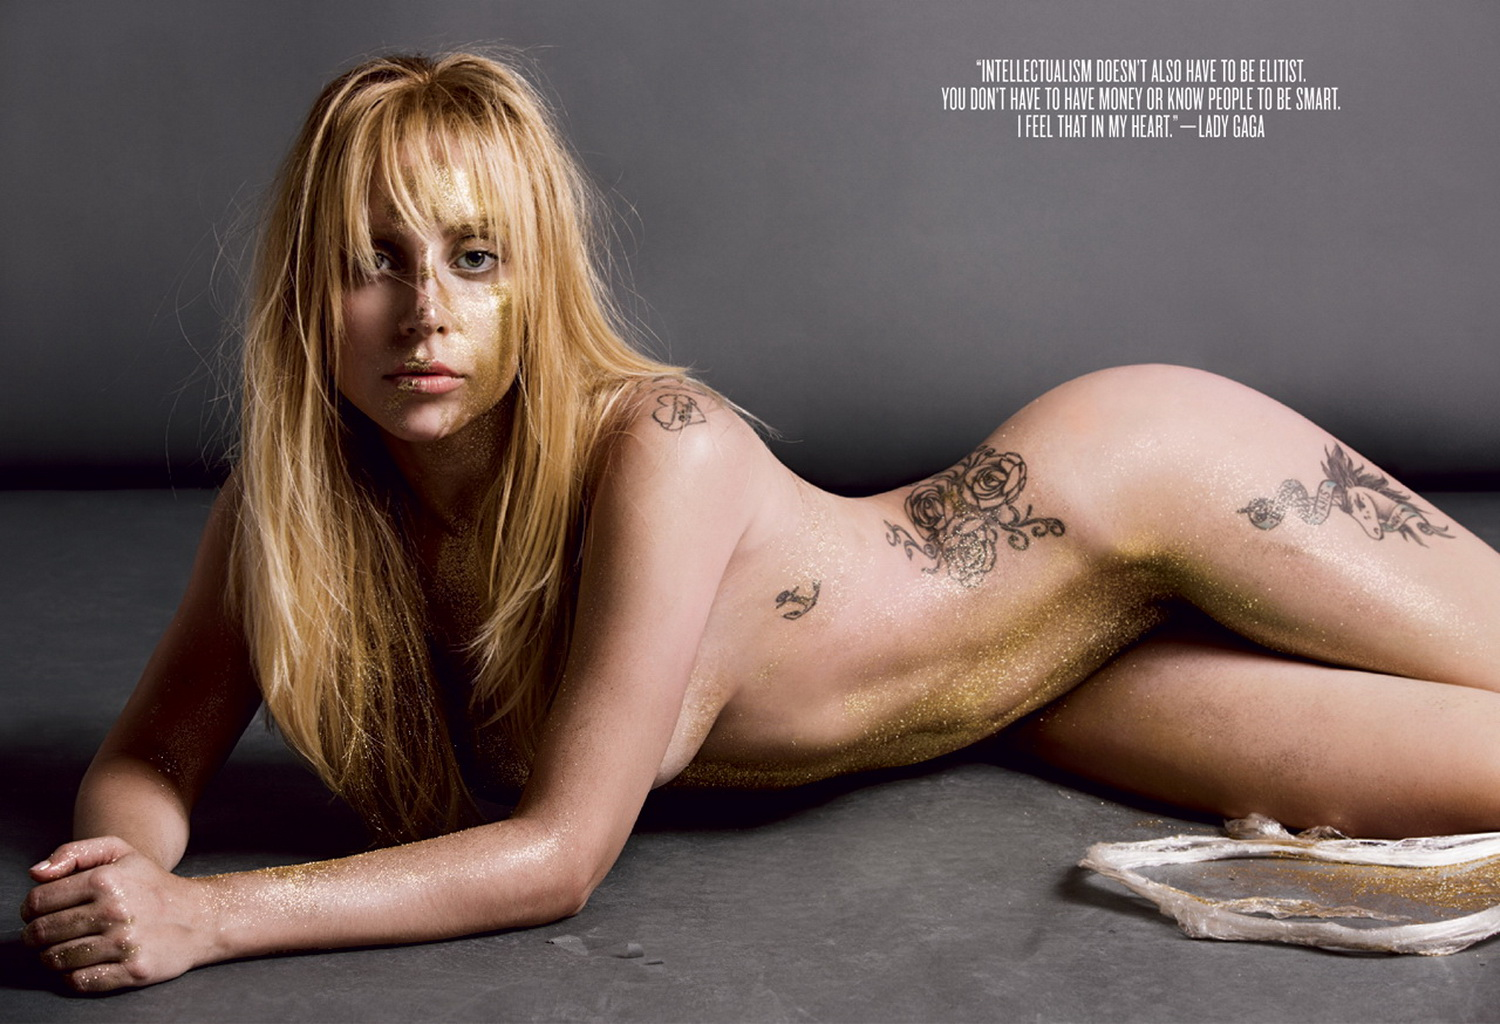 Lady gaga fucked nude naked pic share your